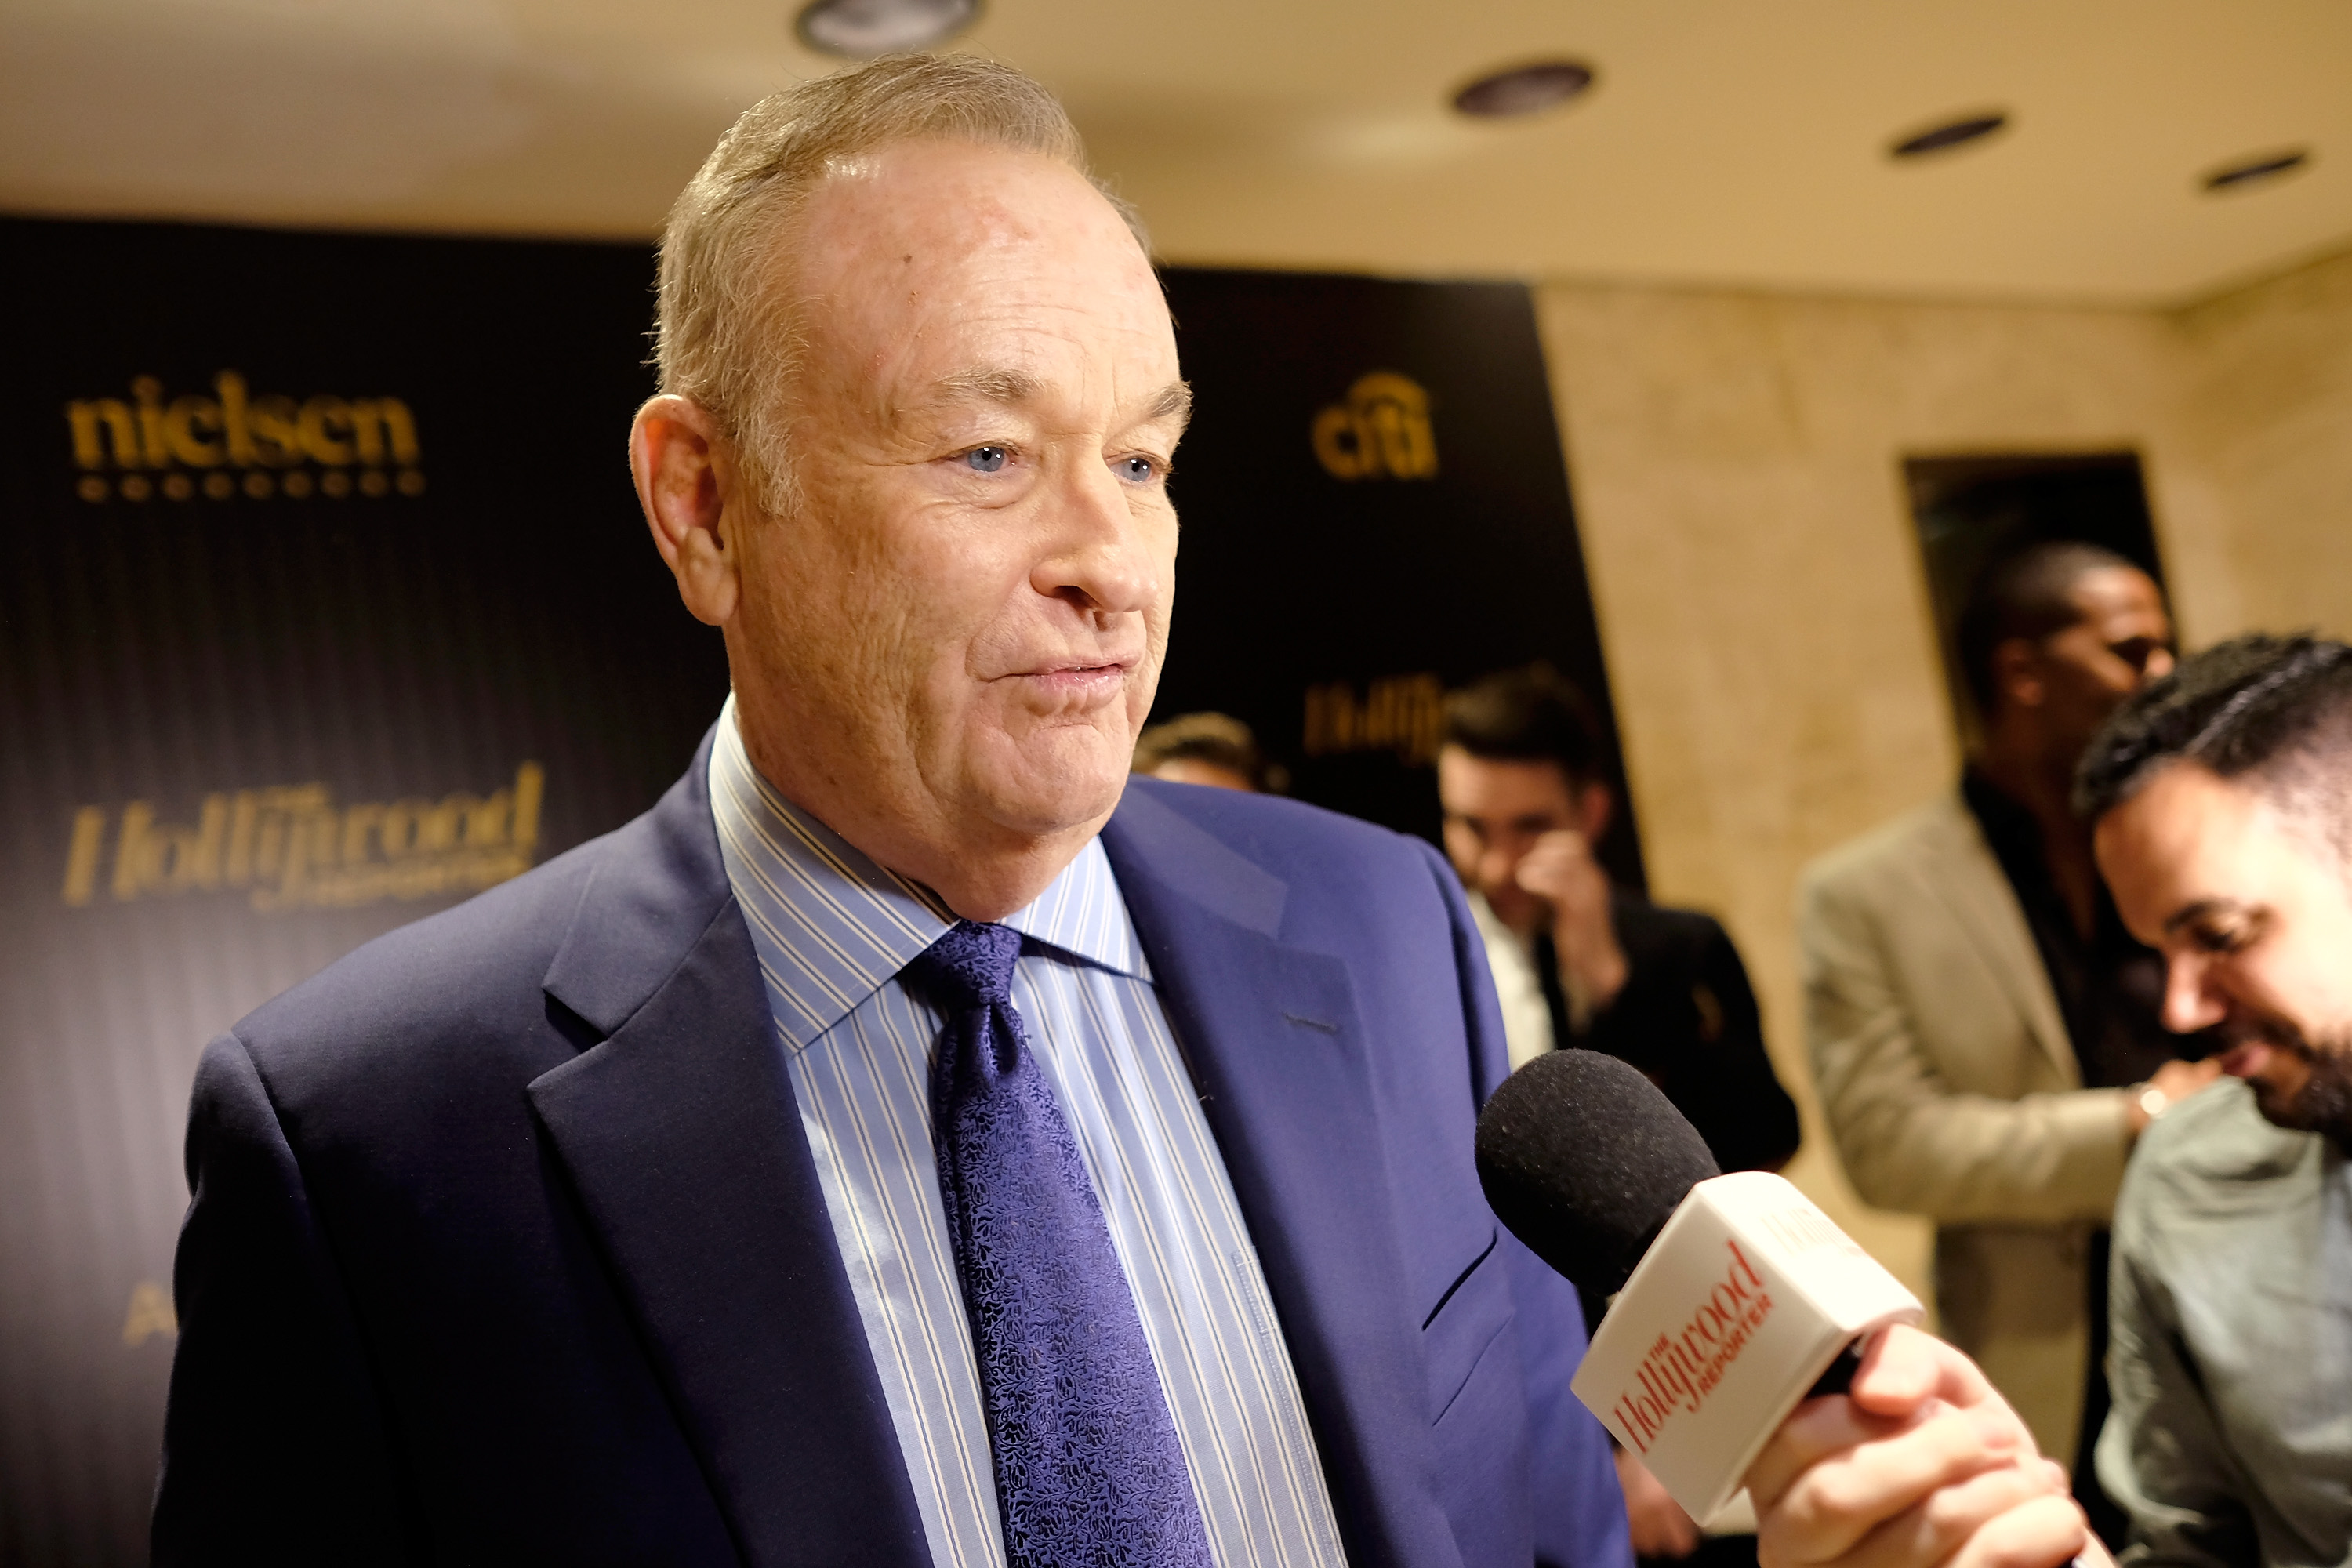 NEW YORK, NEW YORK - APRIL 06: Fox News anchor Bill O'Reilly attends The Hollywood Reporter's 5th Annual 35 Most Powerful People in New York (Getty Images)